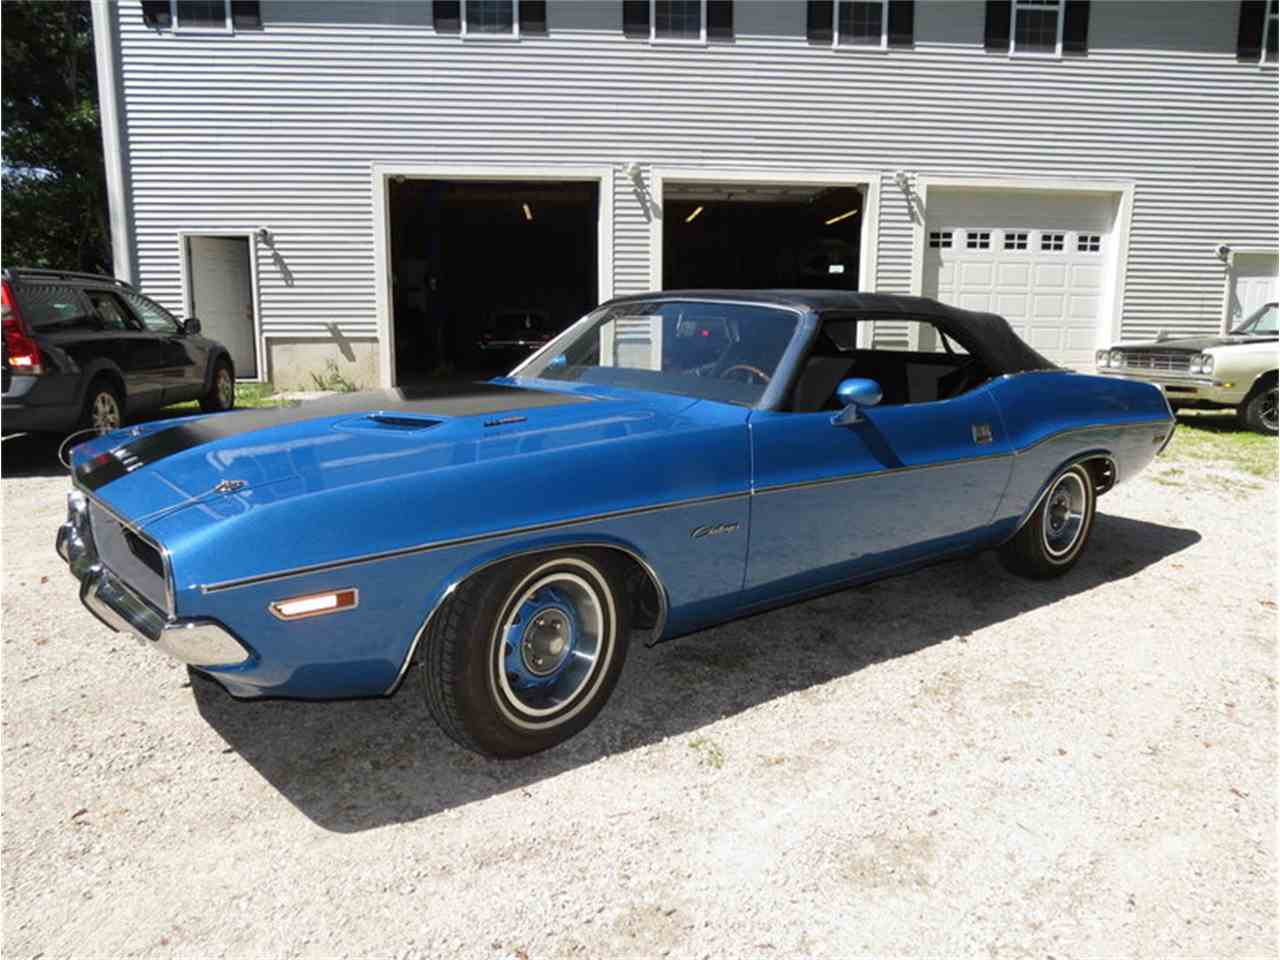 Large Picture of Classic 1971 Challenger located in Massachusetts - $45,900.00 - J0QS